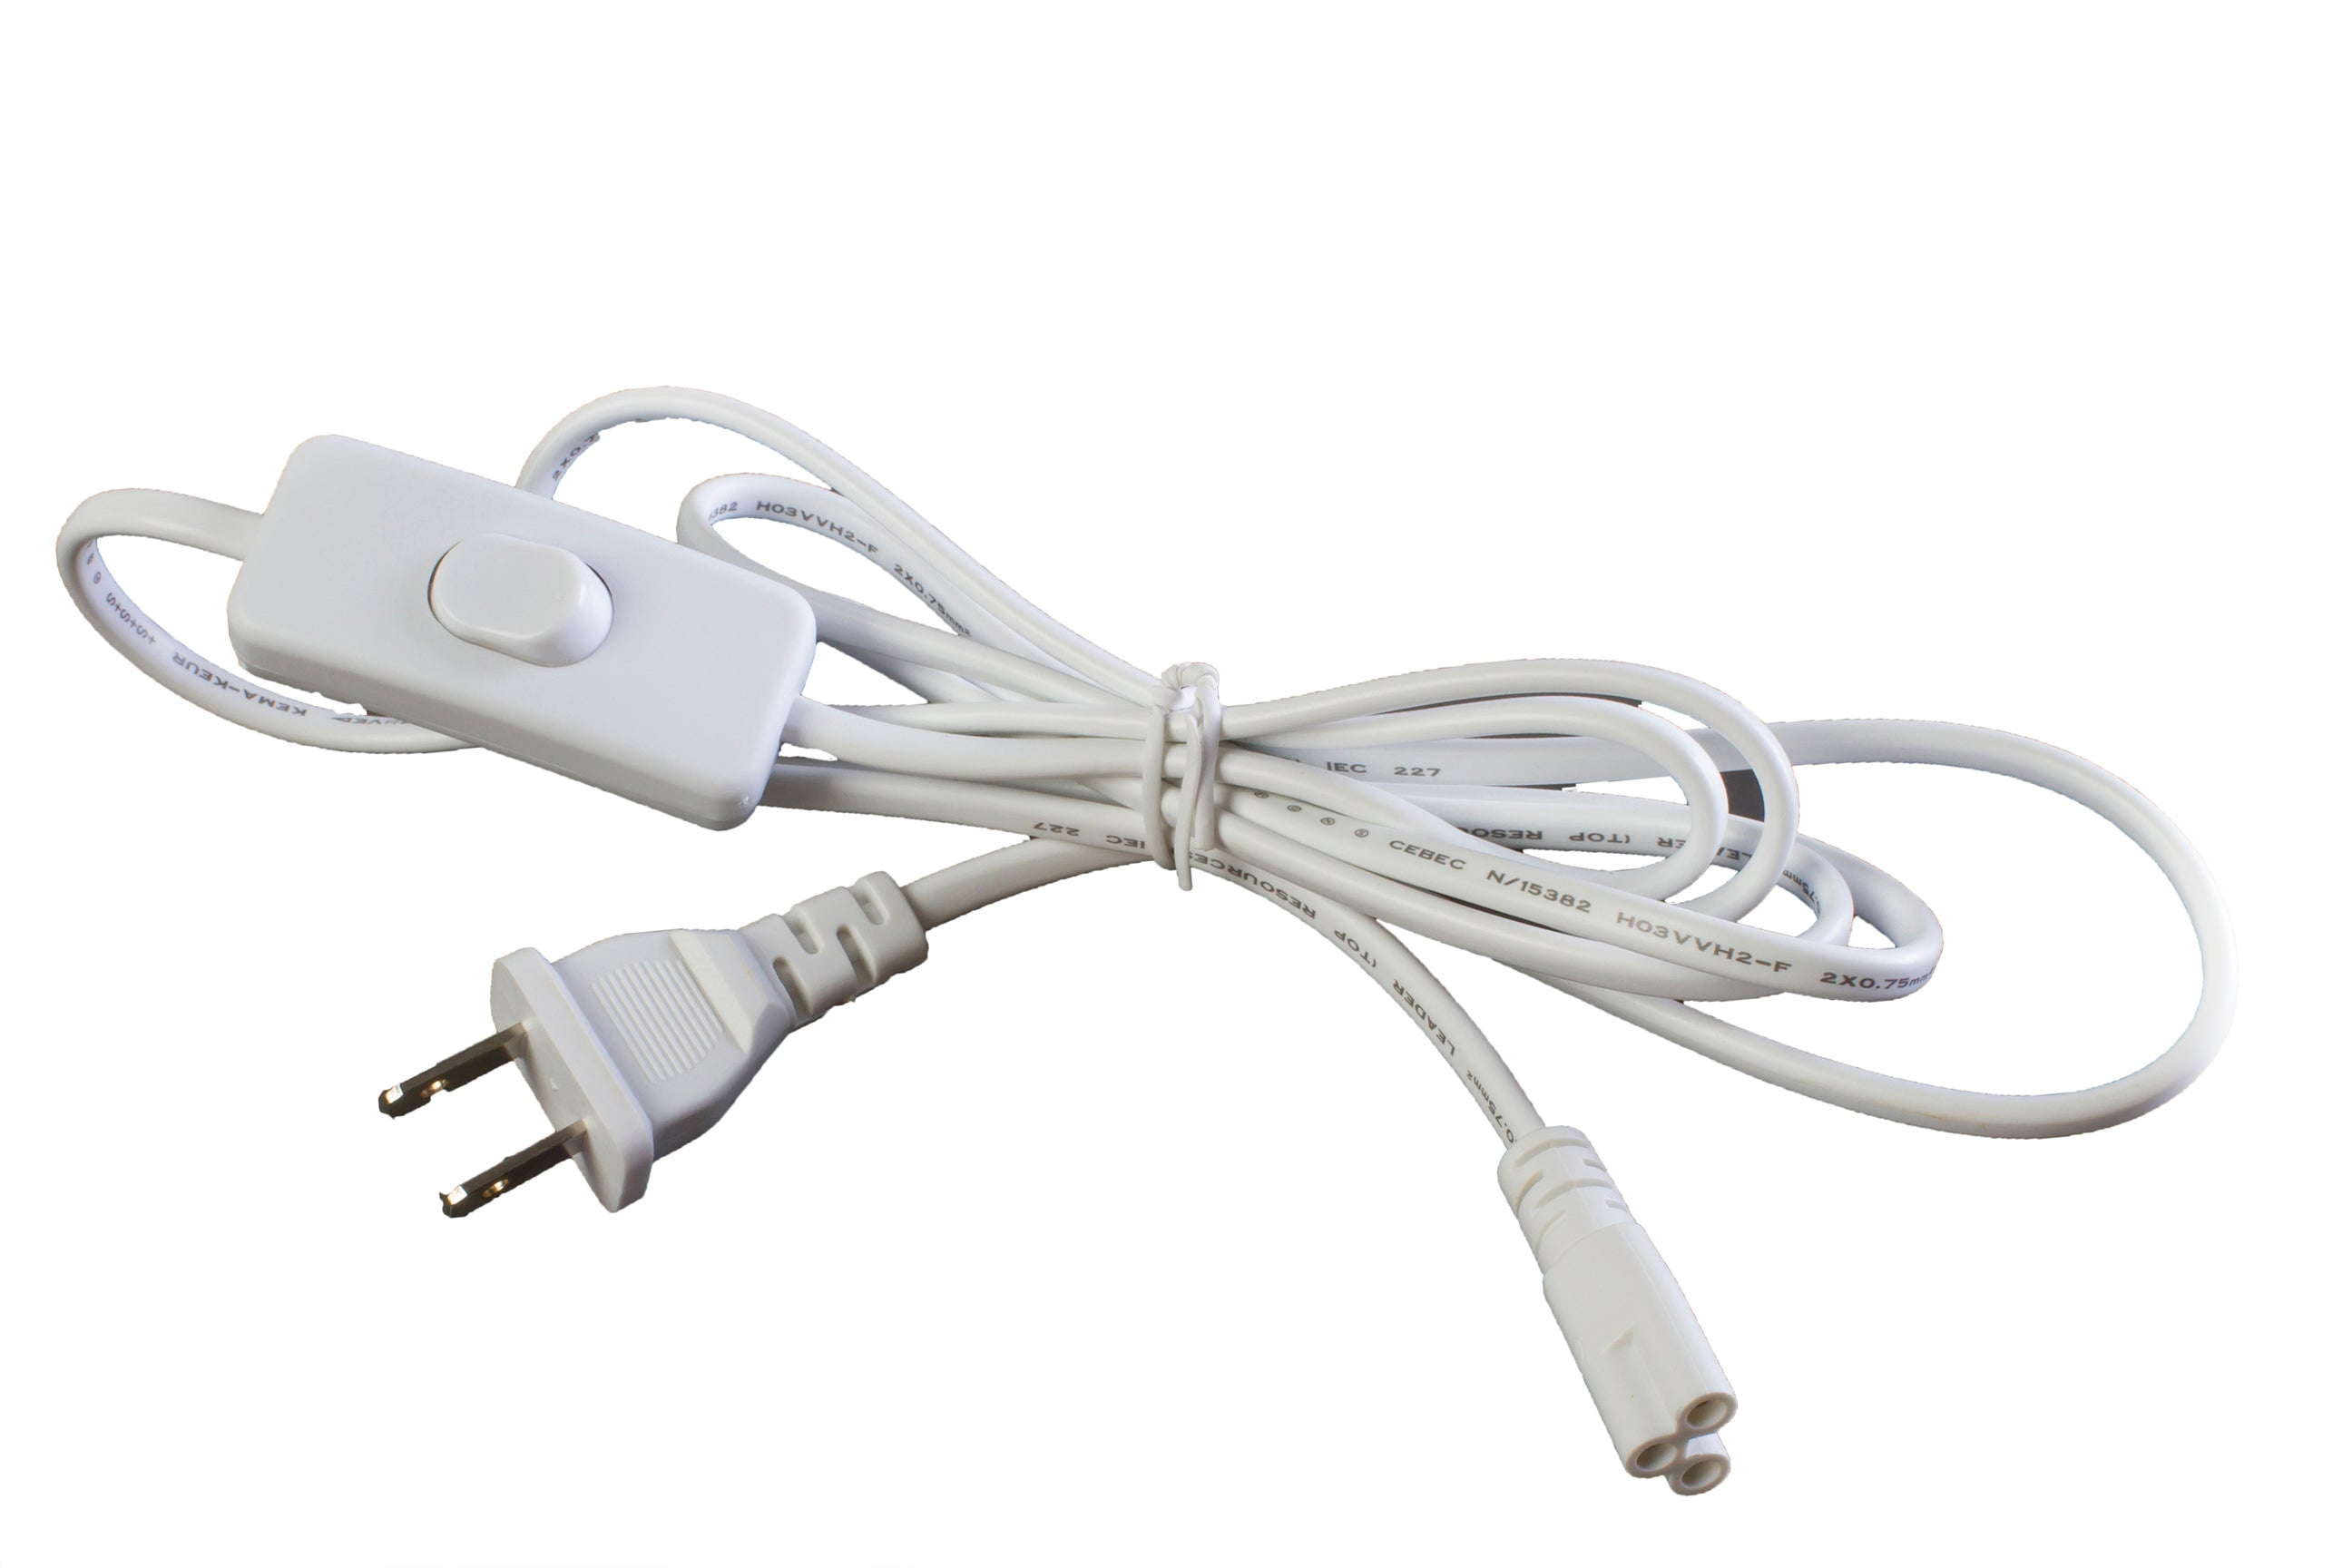 6ft Integrated LED Tube Power cable with ON/OFF switch